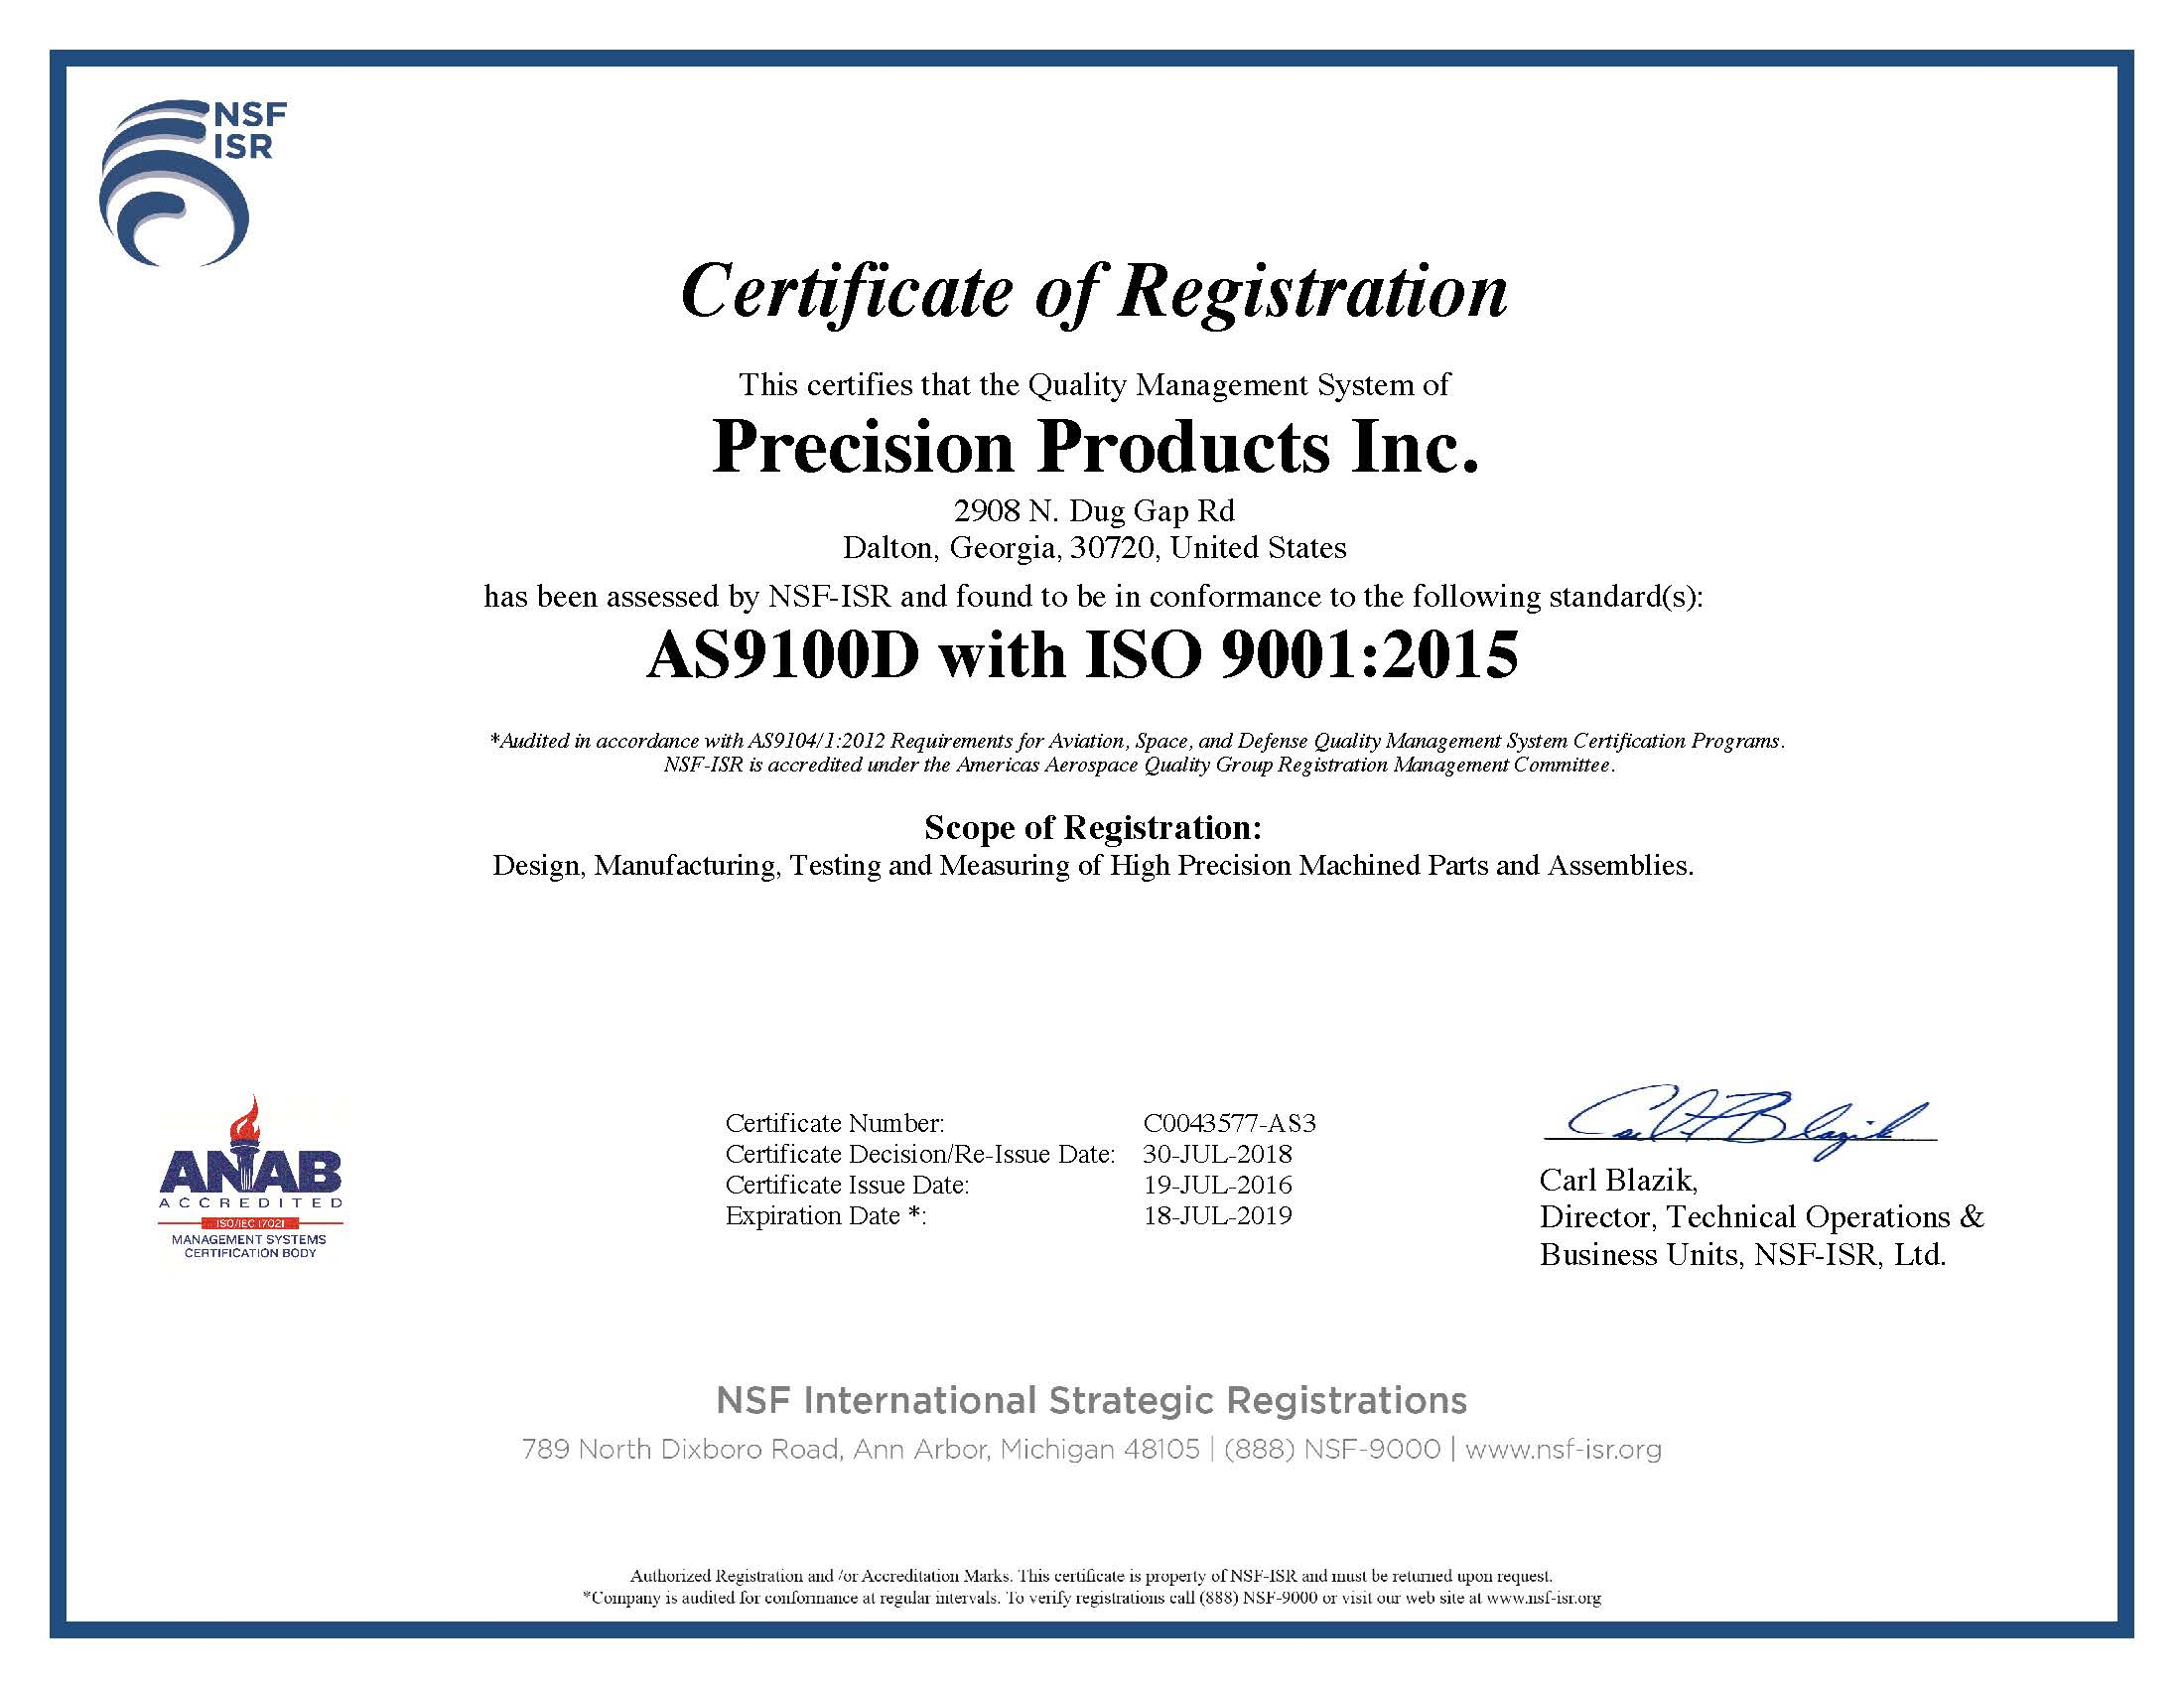 C0043577-AS3 Certification